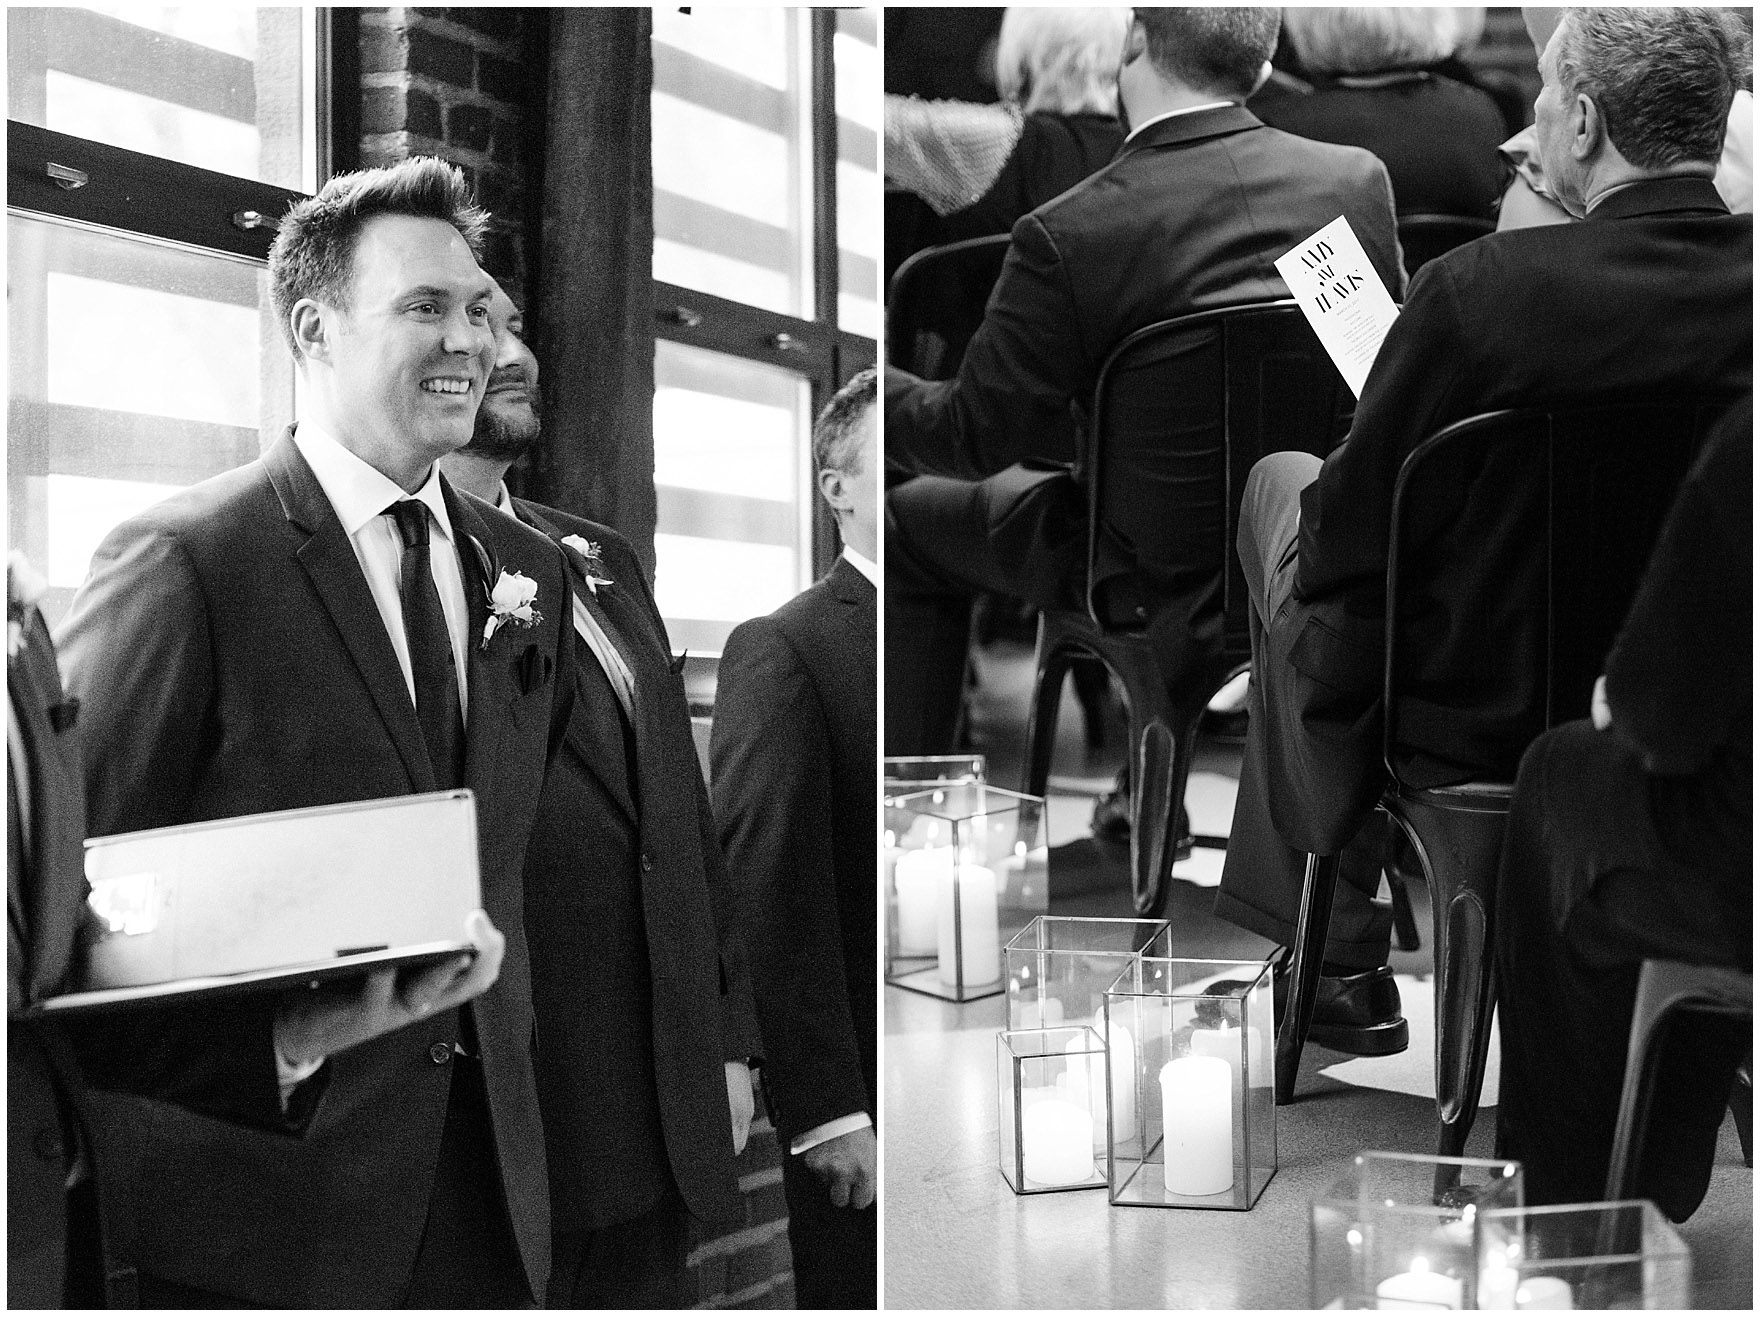 A groom watches his bride walk down the aisle during the ceremony for an Ovation Chicago wedding.